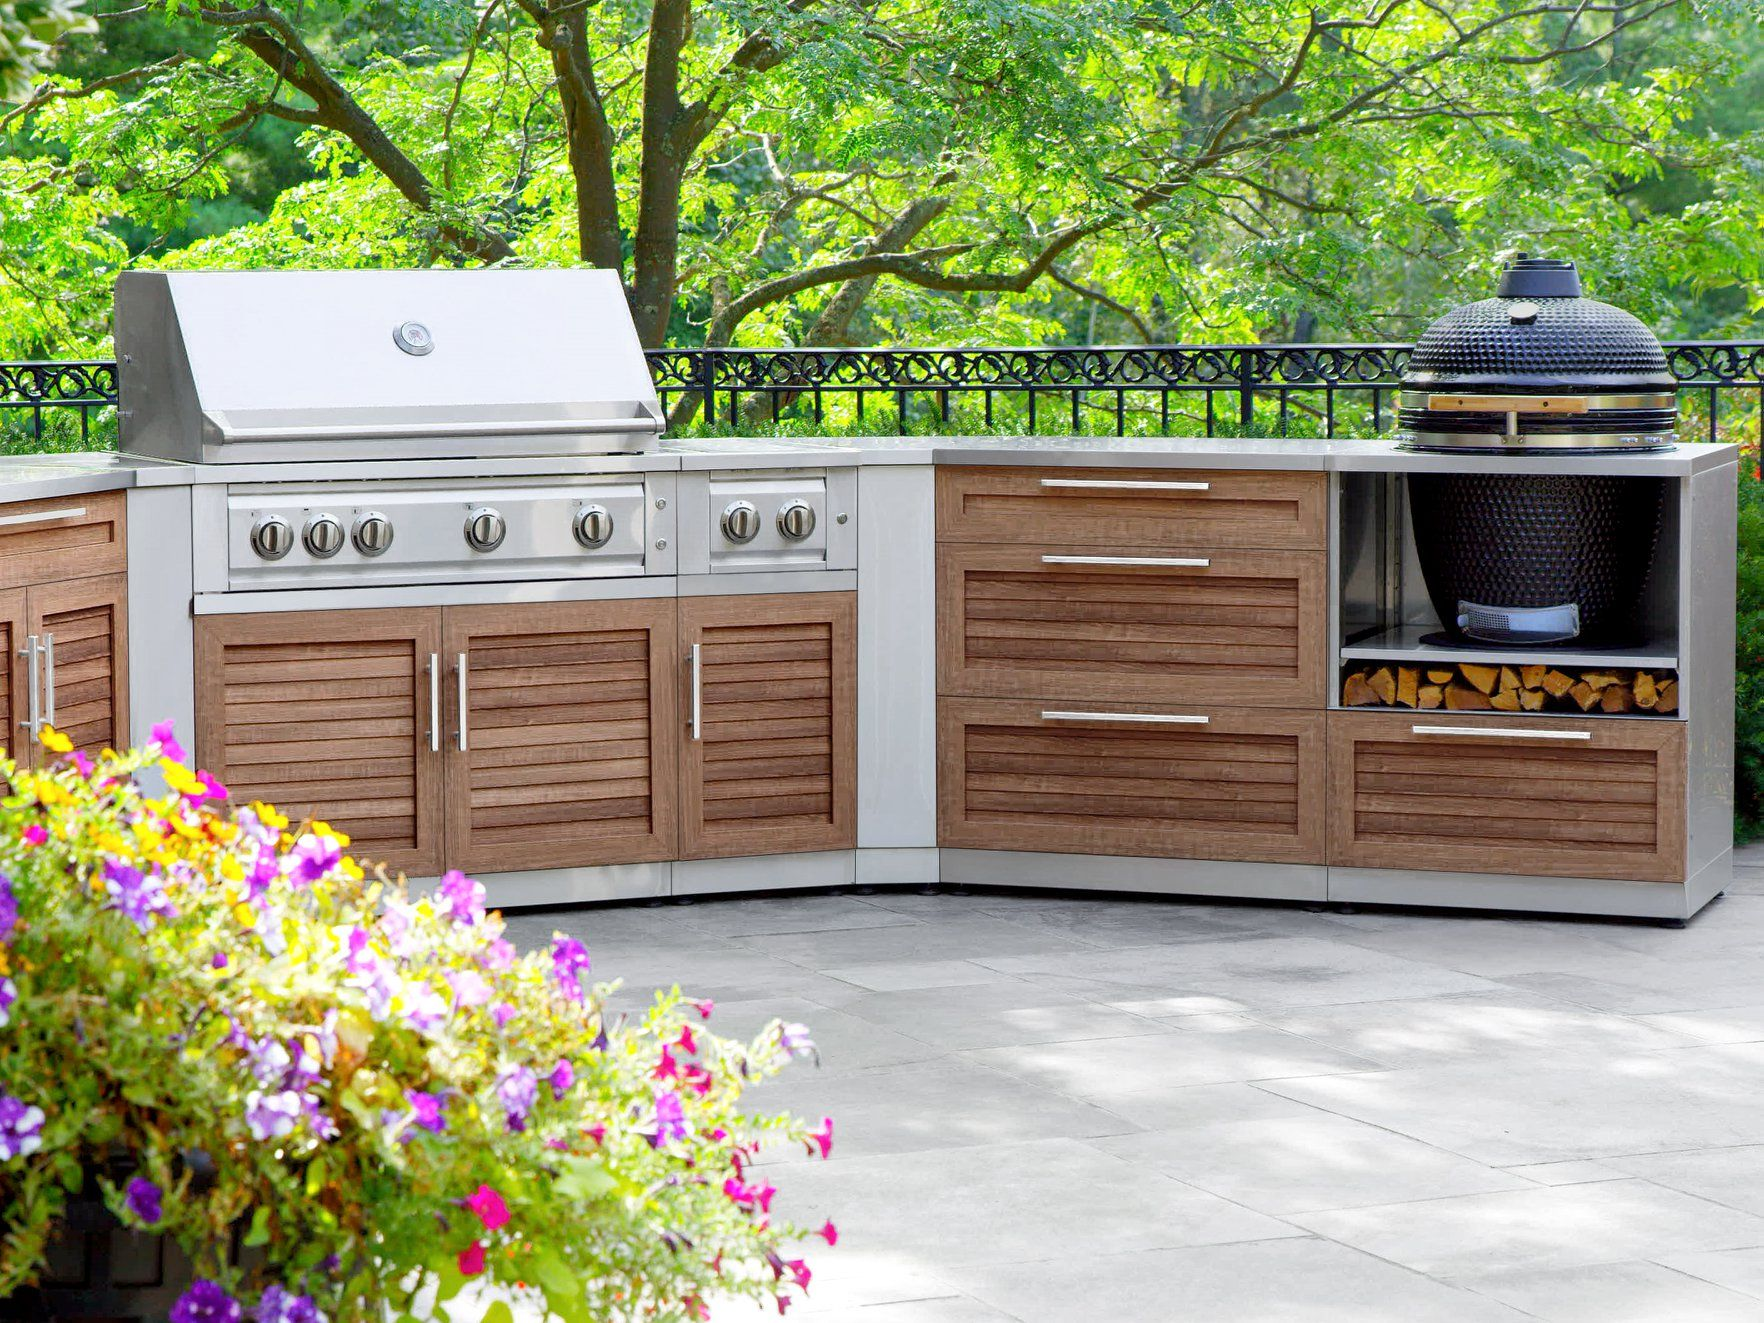 Newage Products Outdoor Kitchen Stainless Steel Series In 2020 Outdoor Kitchen Cabinets Outdoor Kitchen Outdoor Kitchen Plans